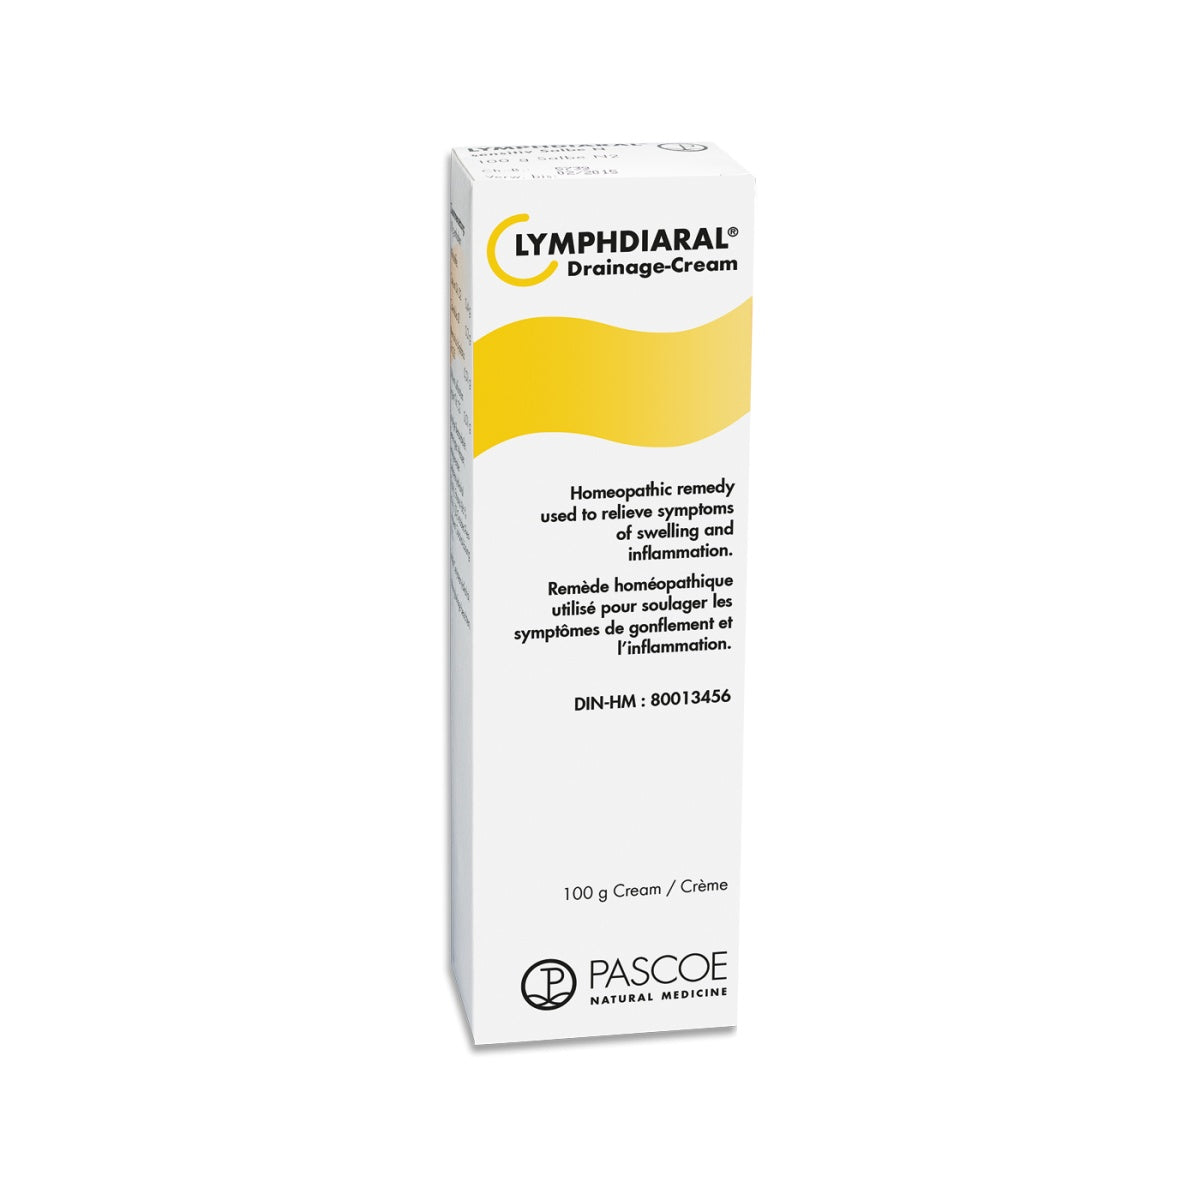 Supplements - Pascoe - Lymphdiaral Drainage Cream